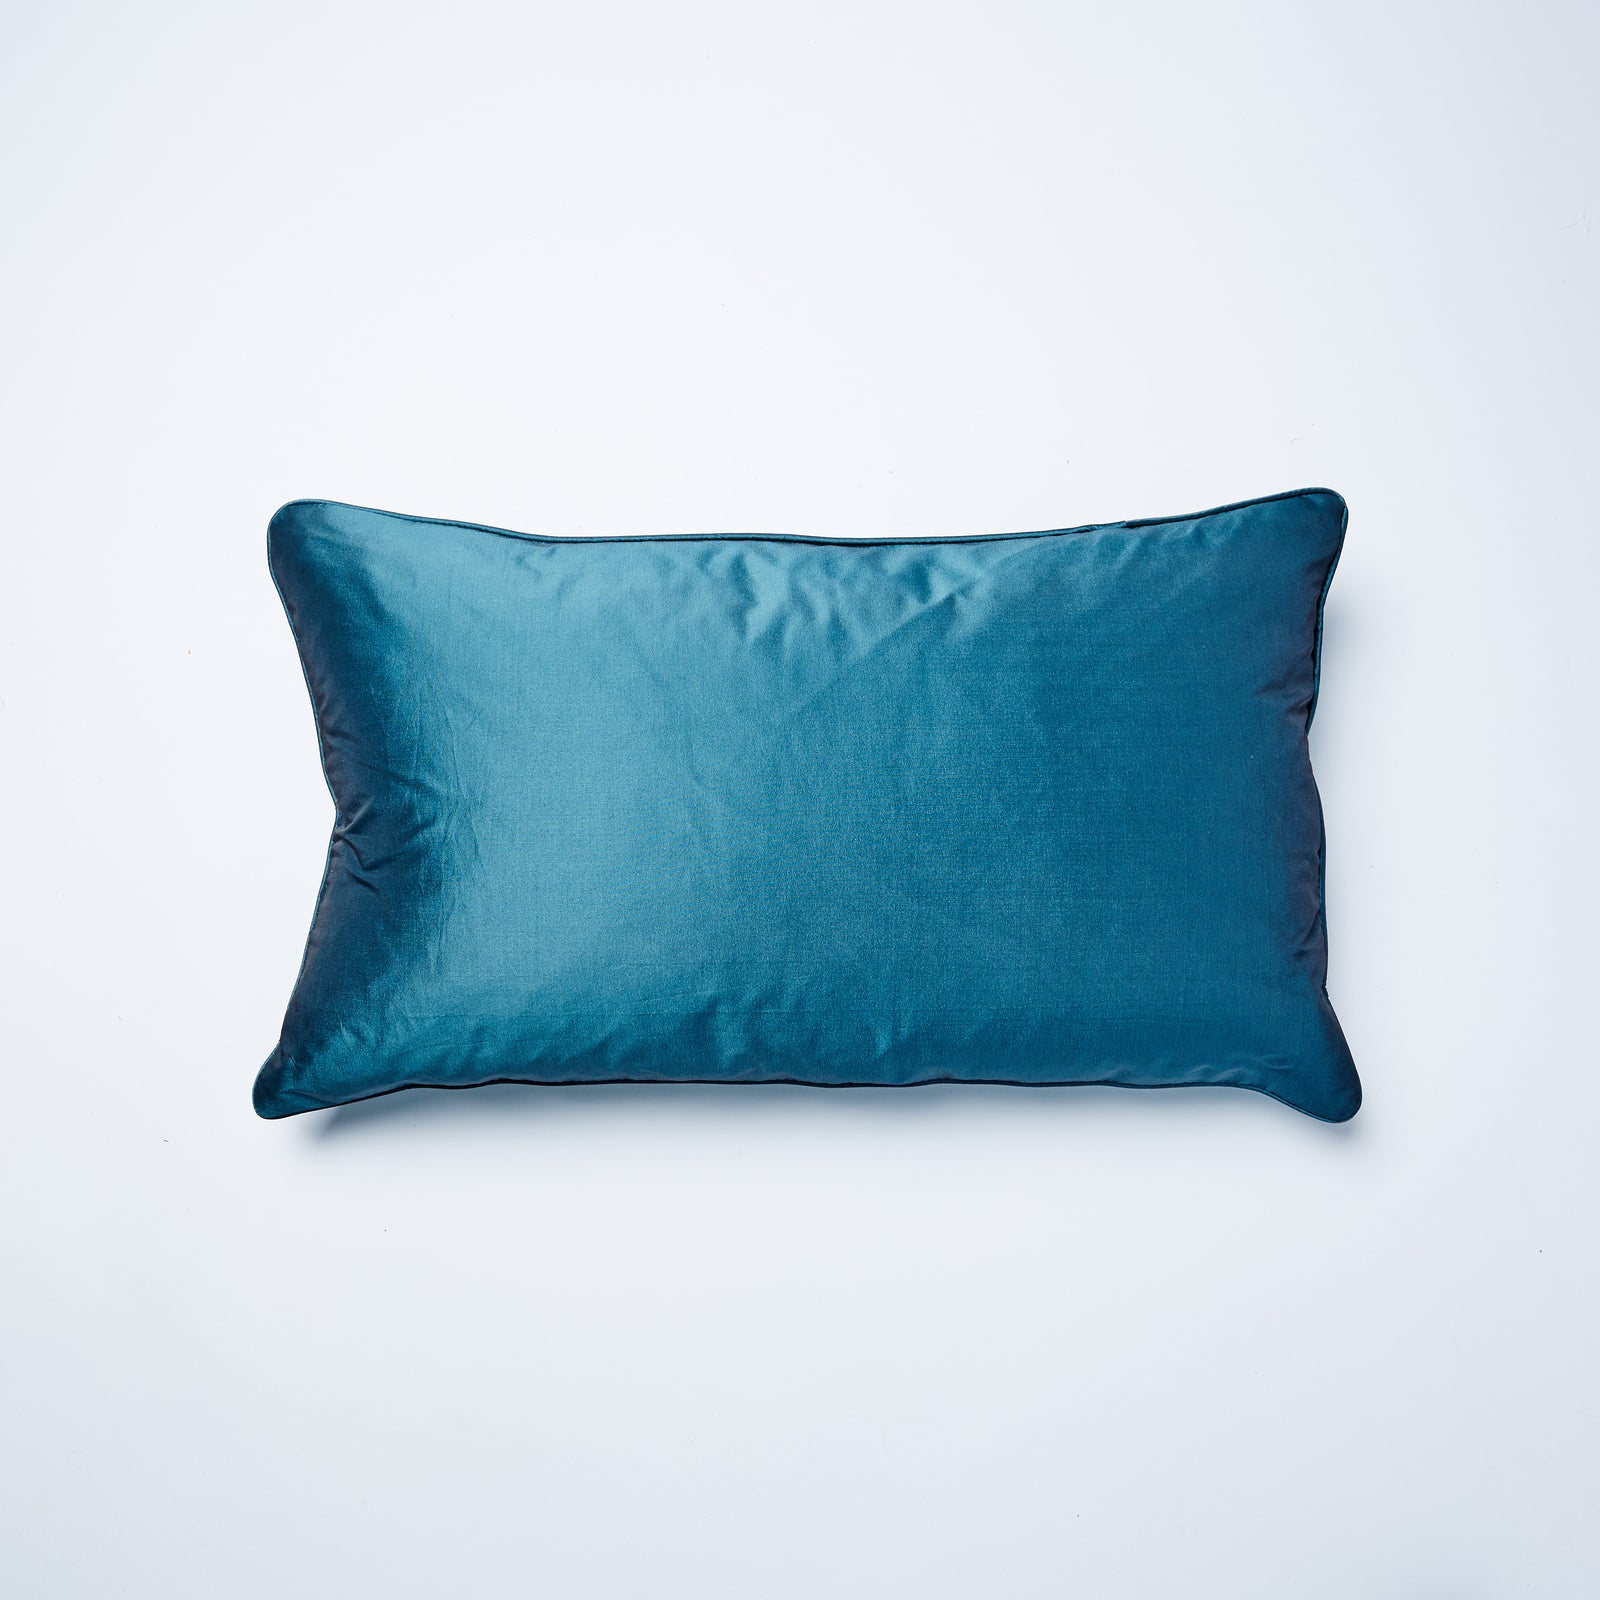 A rich turquoise hue covers the back, perfect completing the handiwork decorating the cushion's front